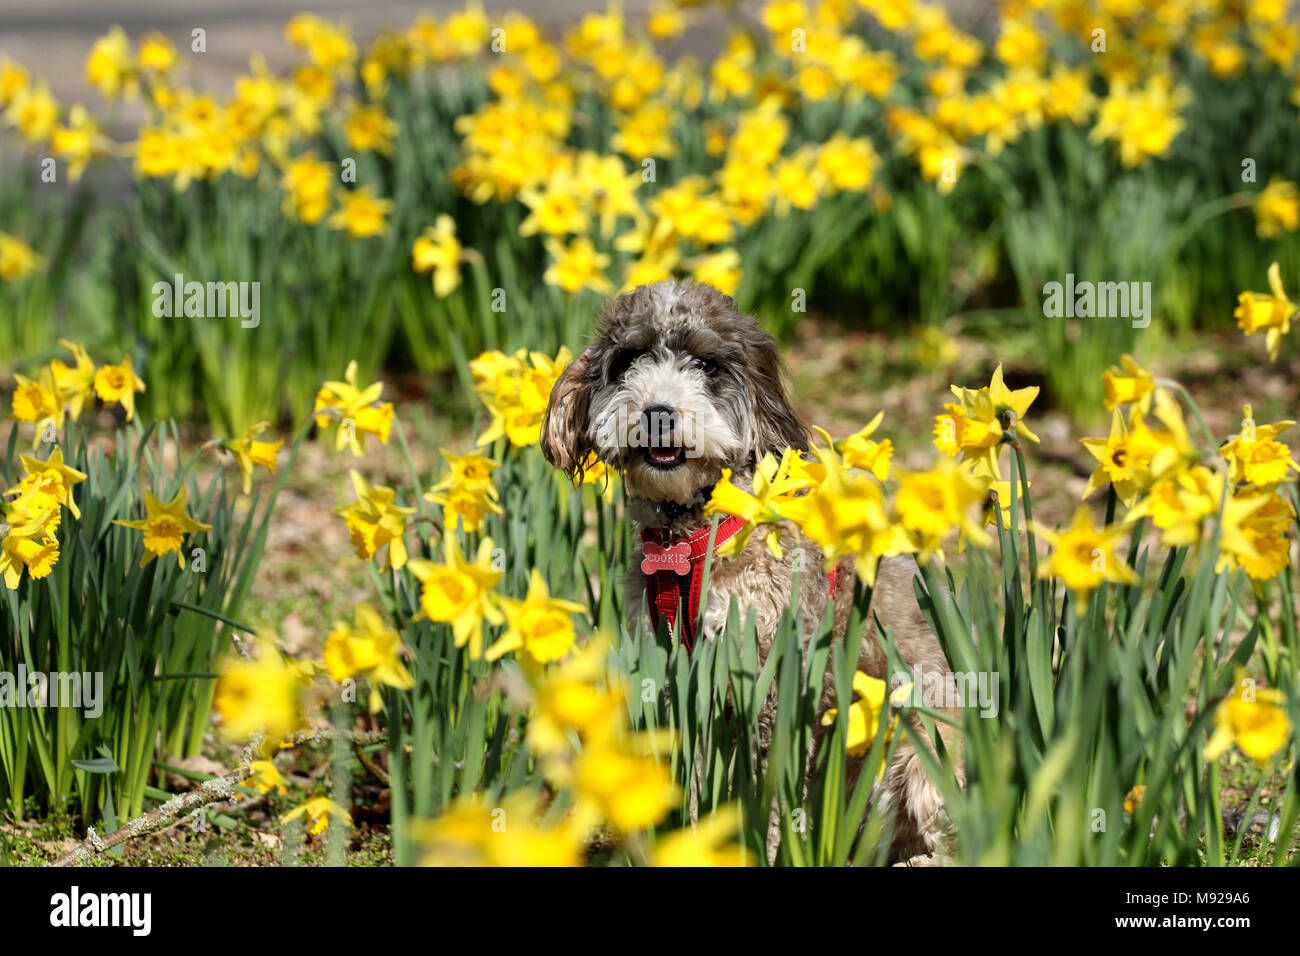 Peterborough, Cambridgeshire, on March 21, 2018. Spring is finally making an appearance as Cookie the cockapoo dog stands amongst these yellow daffodils in Peterborough, Cambridgeshire, on March 21, 2018. Credit: Paul Marriott/Alamy Live News Stock Photo